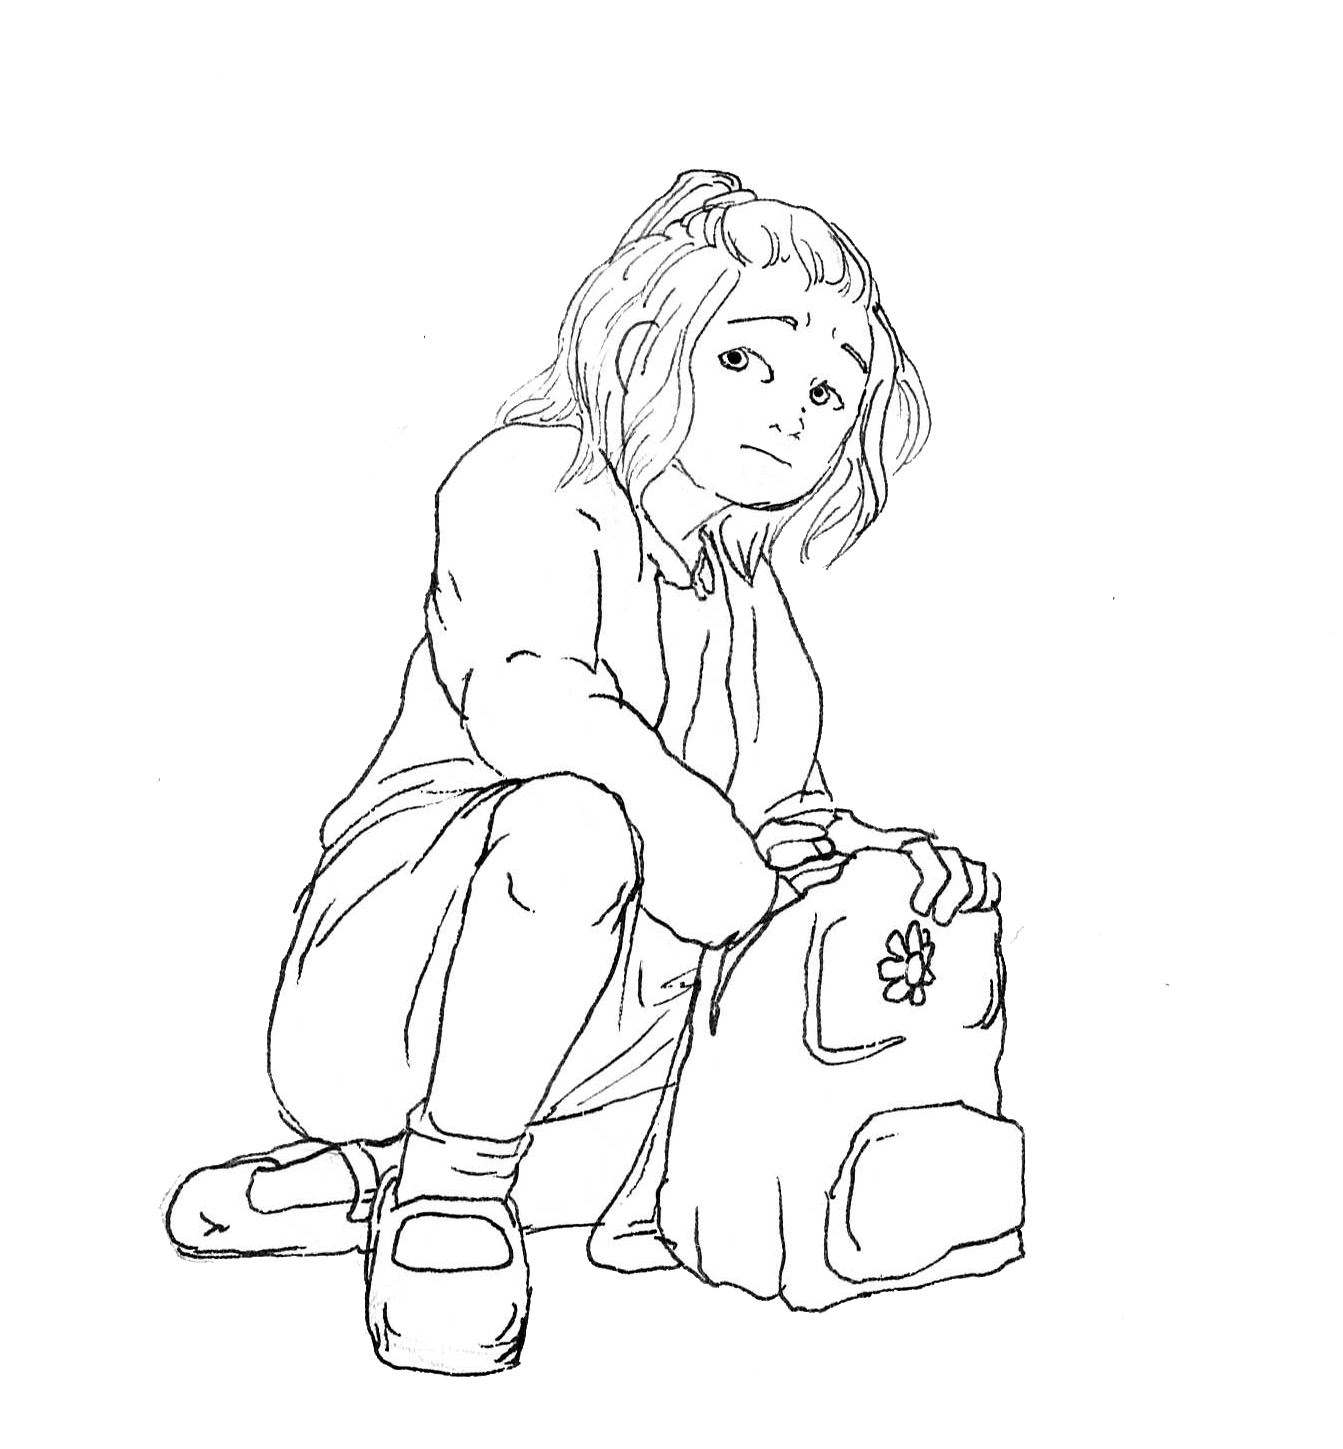 Elody and her bag